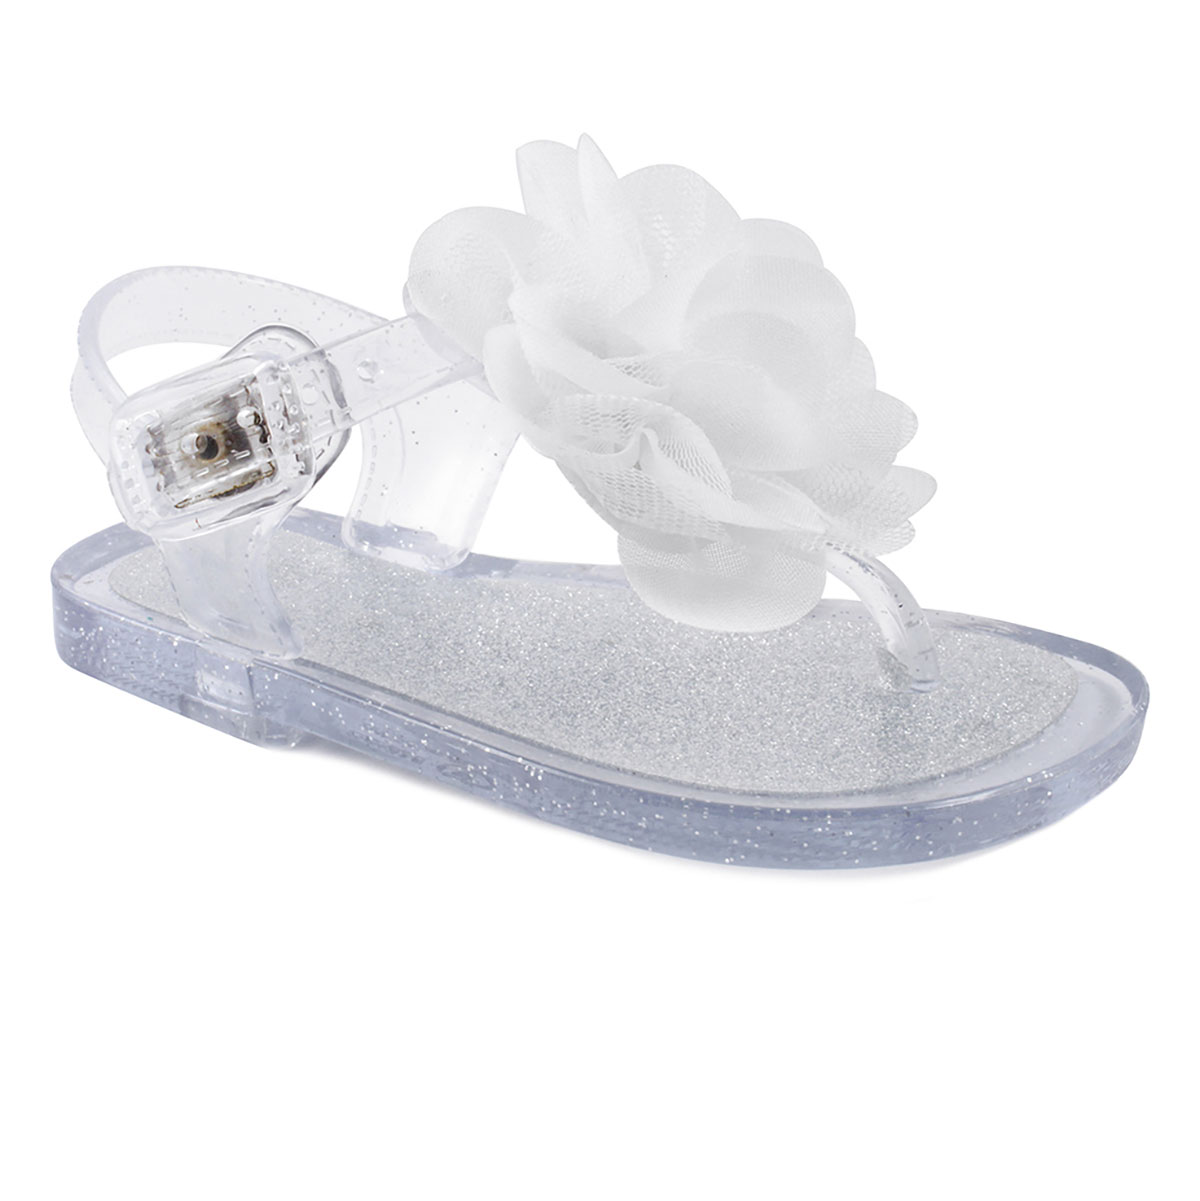 Baby Girls Glitter Jelly Sandals Fish Detail  12-18 months